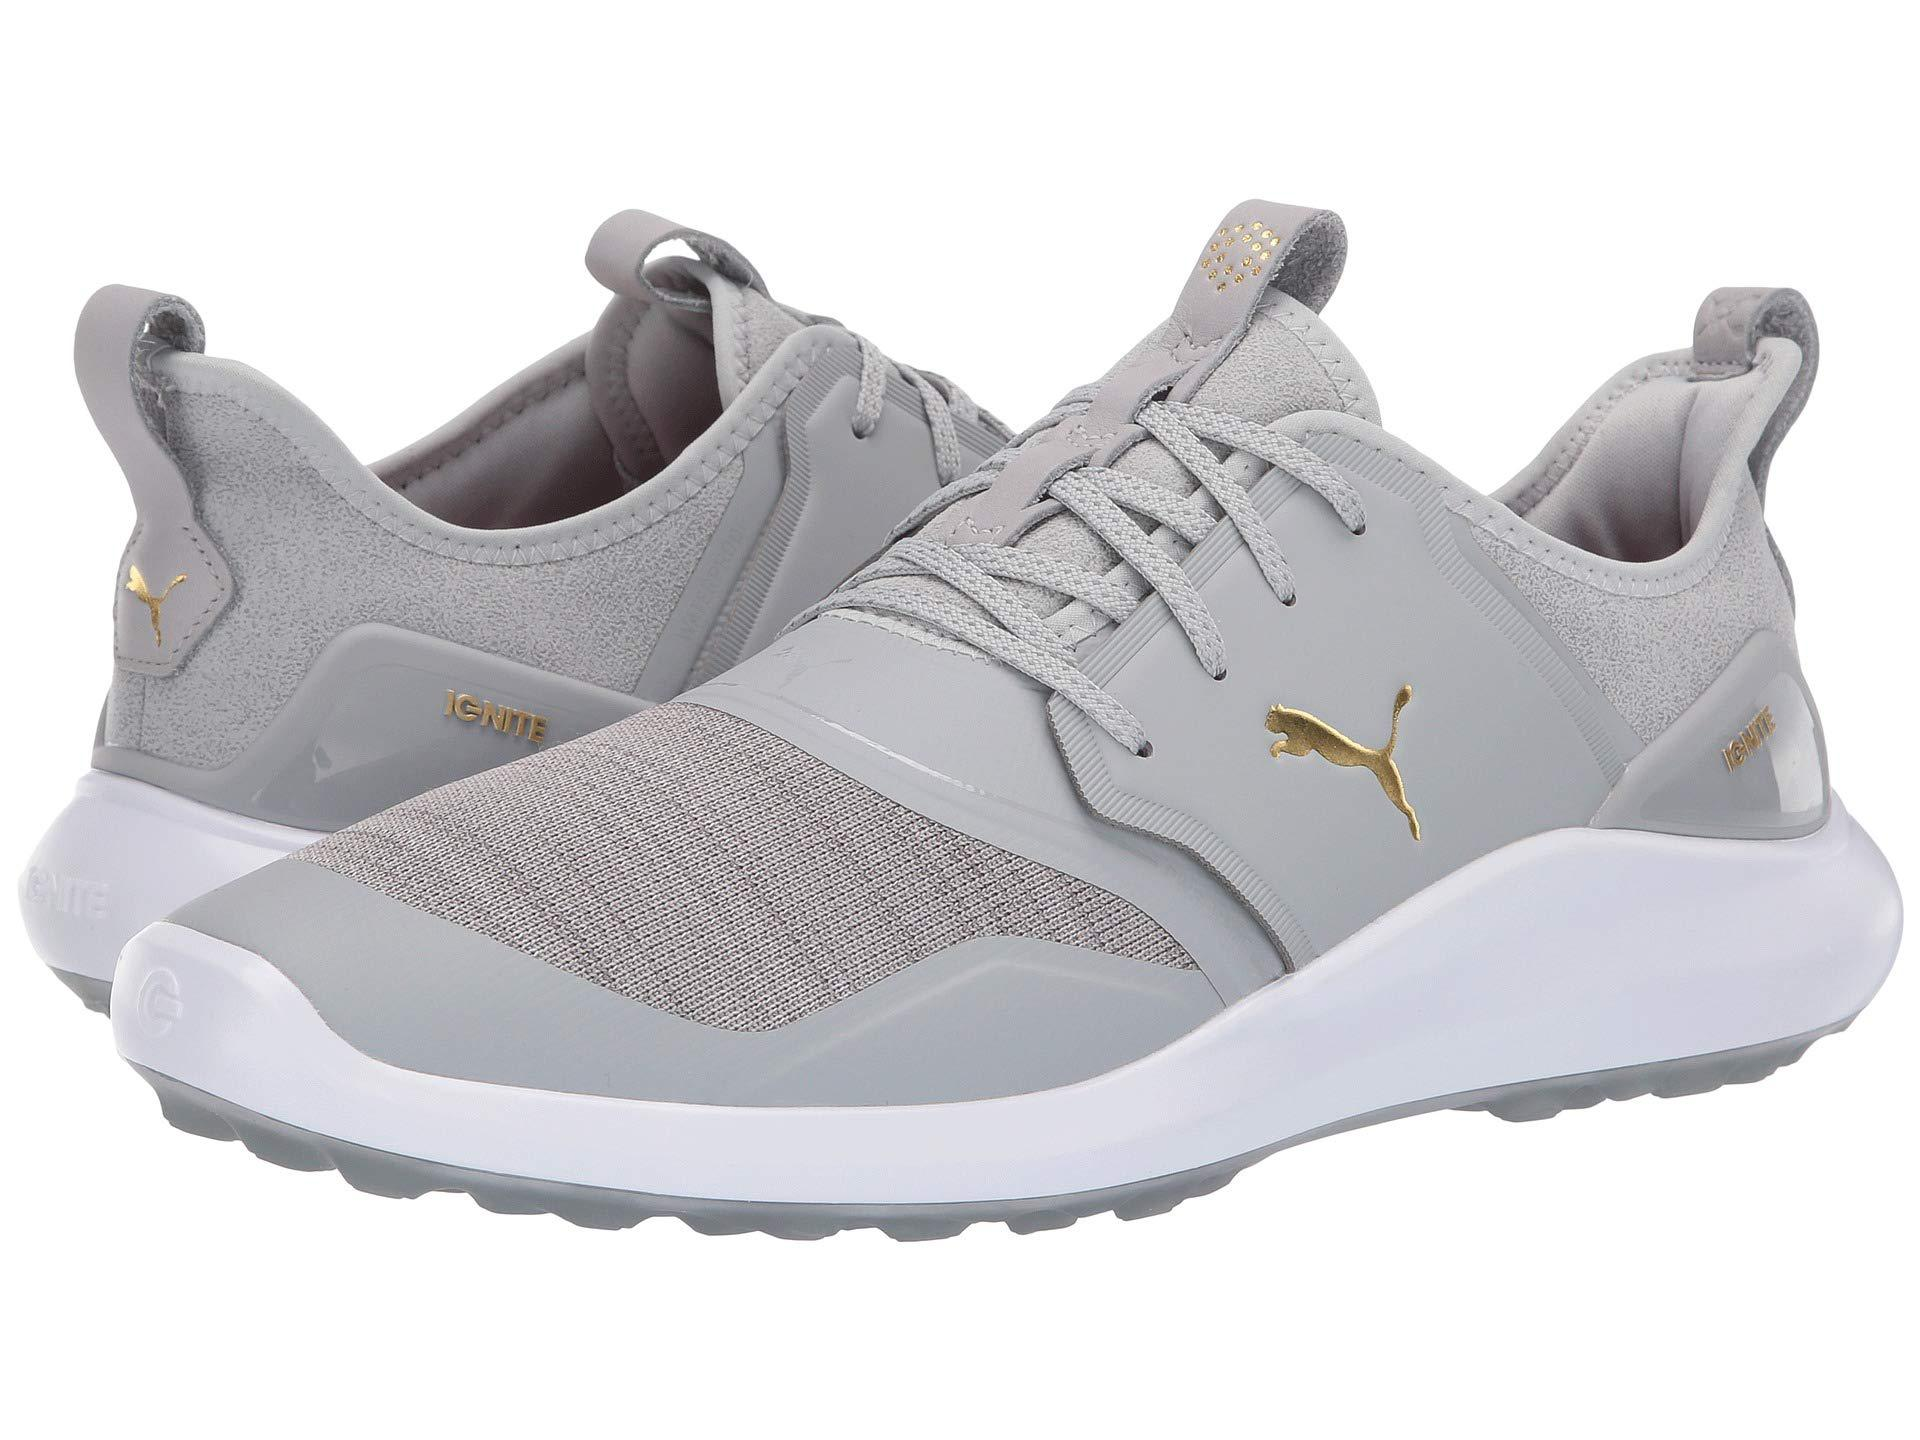 8b4ddf4eac6 Lyst - PUMA Ignite Nxt (peacoat team Gold white) Men s Golf Shoes in ...